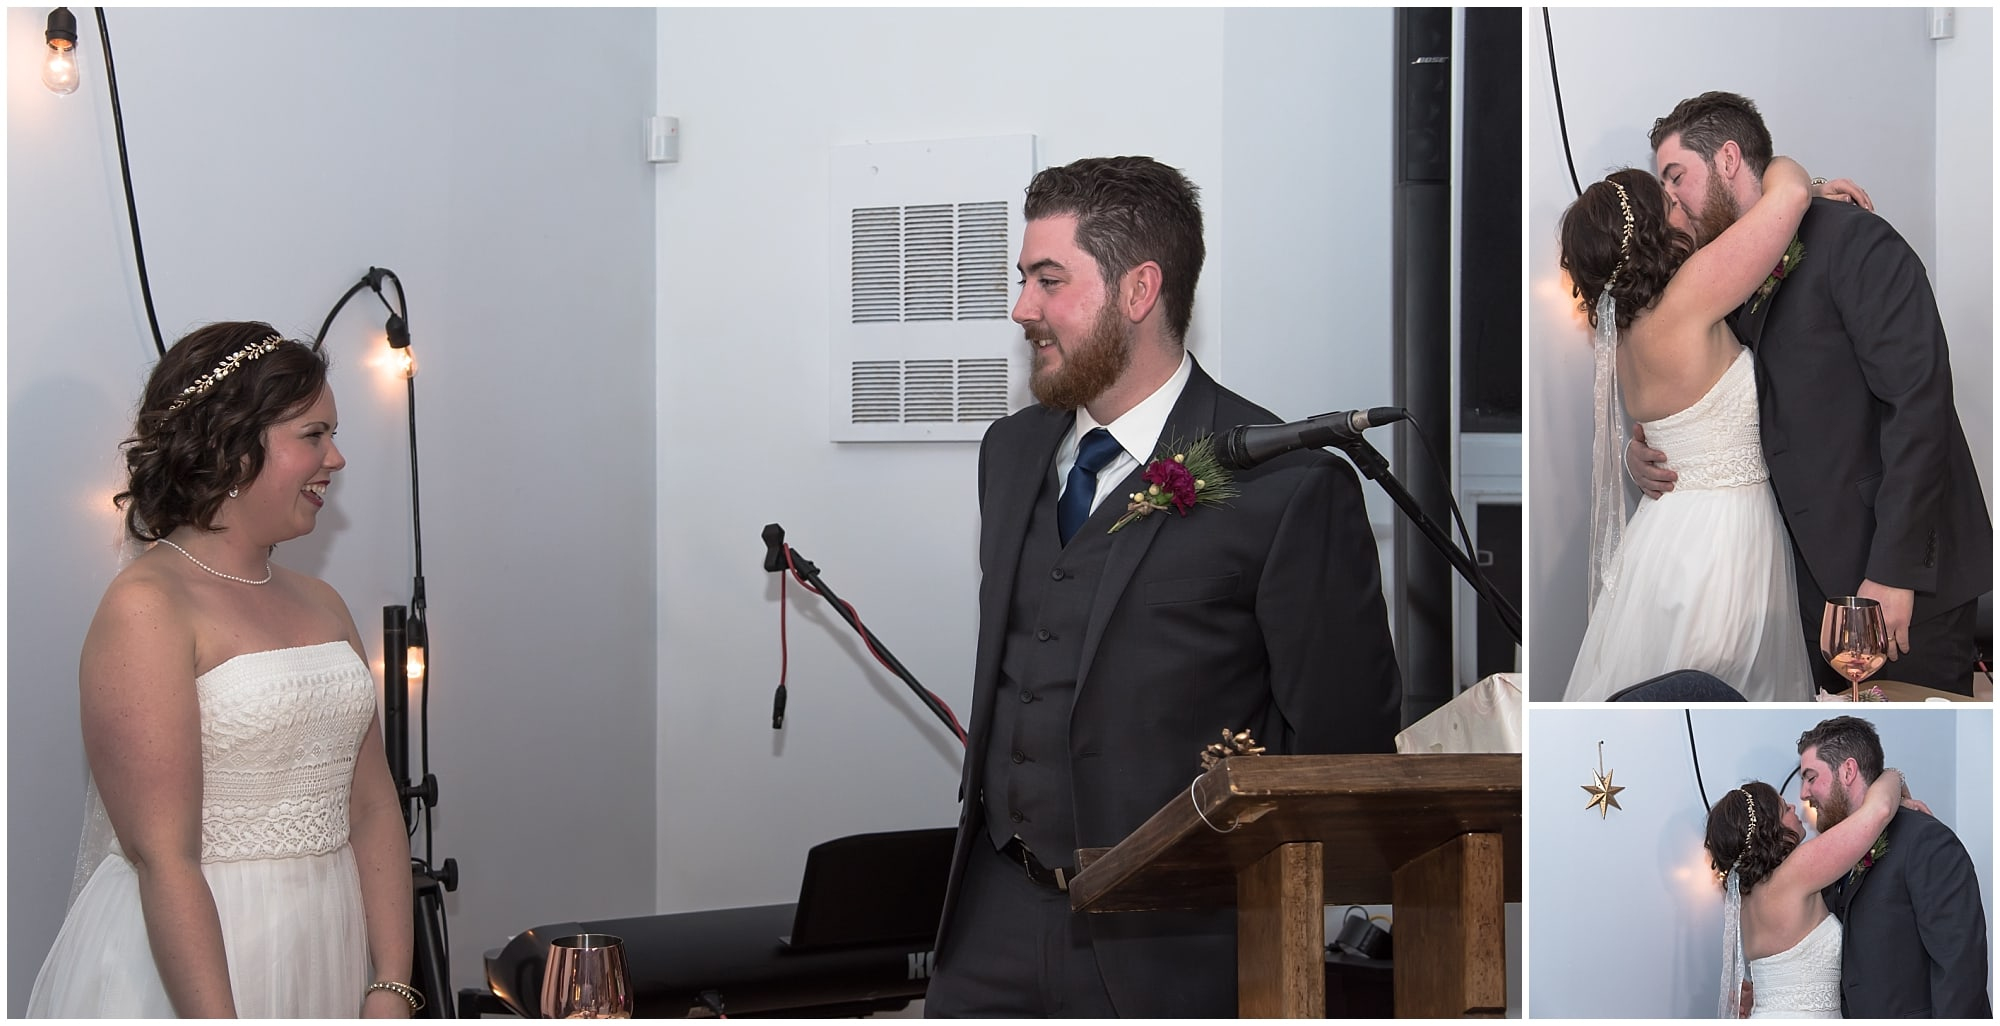 The bride and groom finish their thank you speech and then kiss during their wedding at Fisherman's Cove in Eastern Passage.